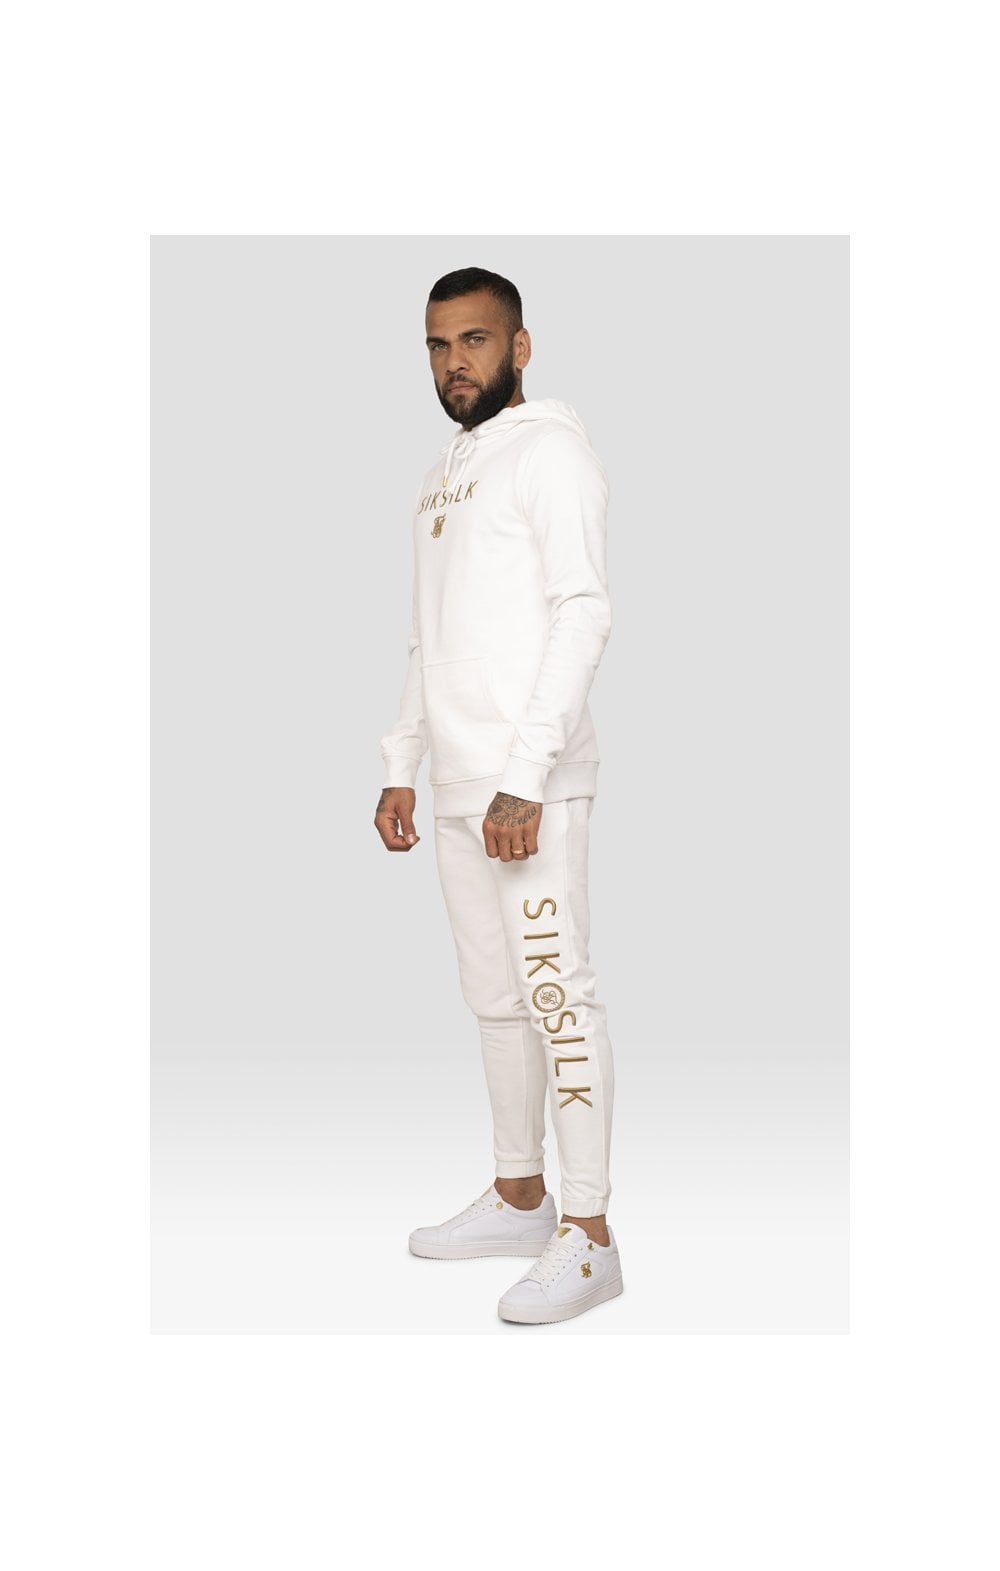 SikSilk x Dani Alves Sweat à Capuche - Blanc (4)